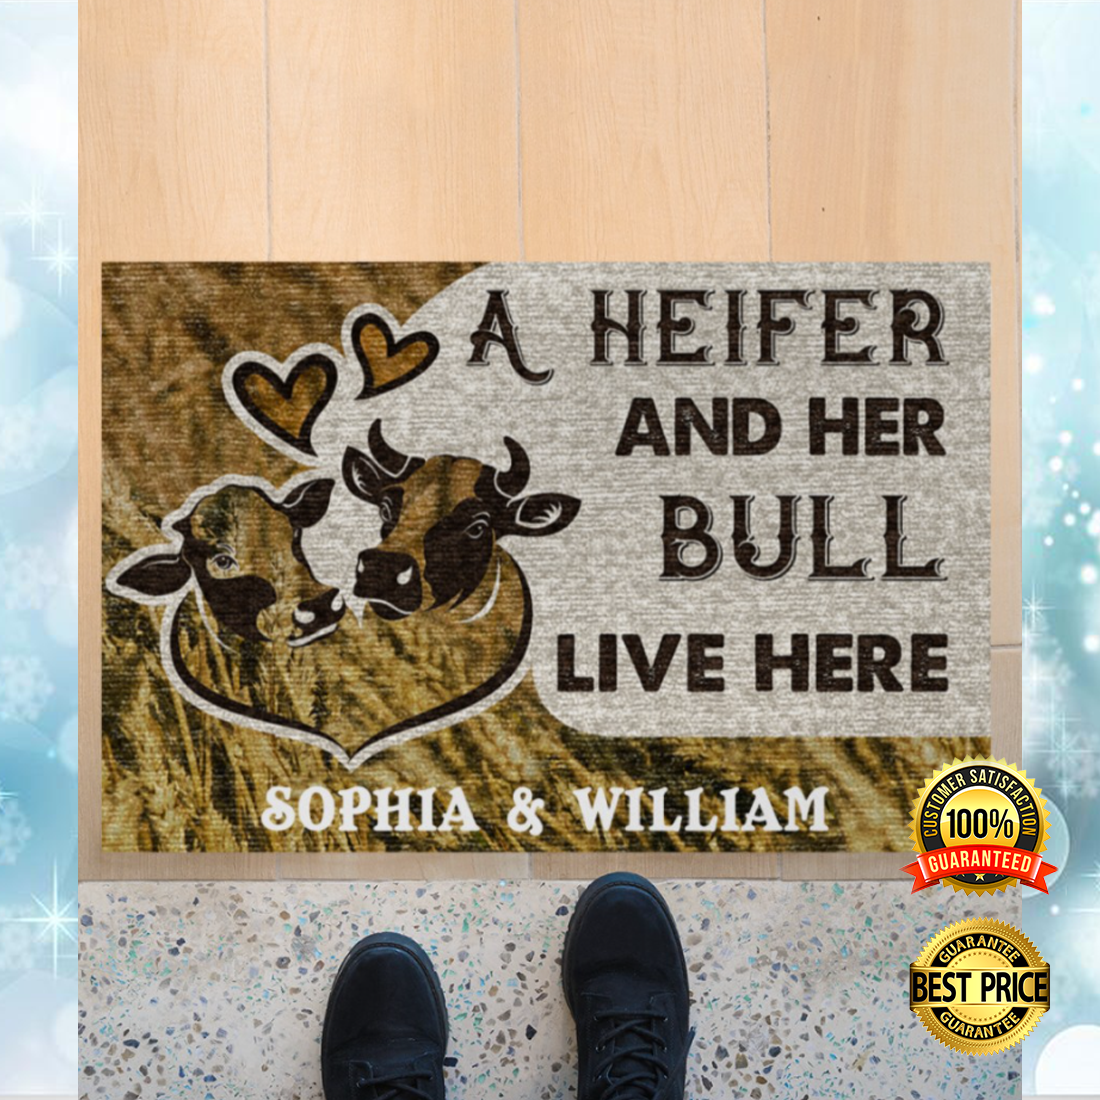 PERSONALIZED A HEIFER AND HER BULL LIVE HERE DOORMAT 6